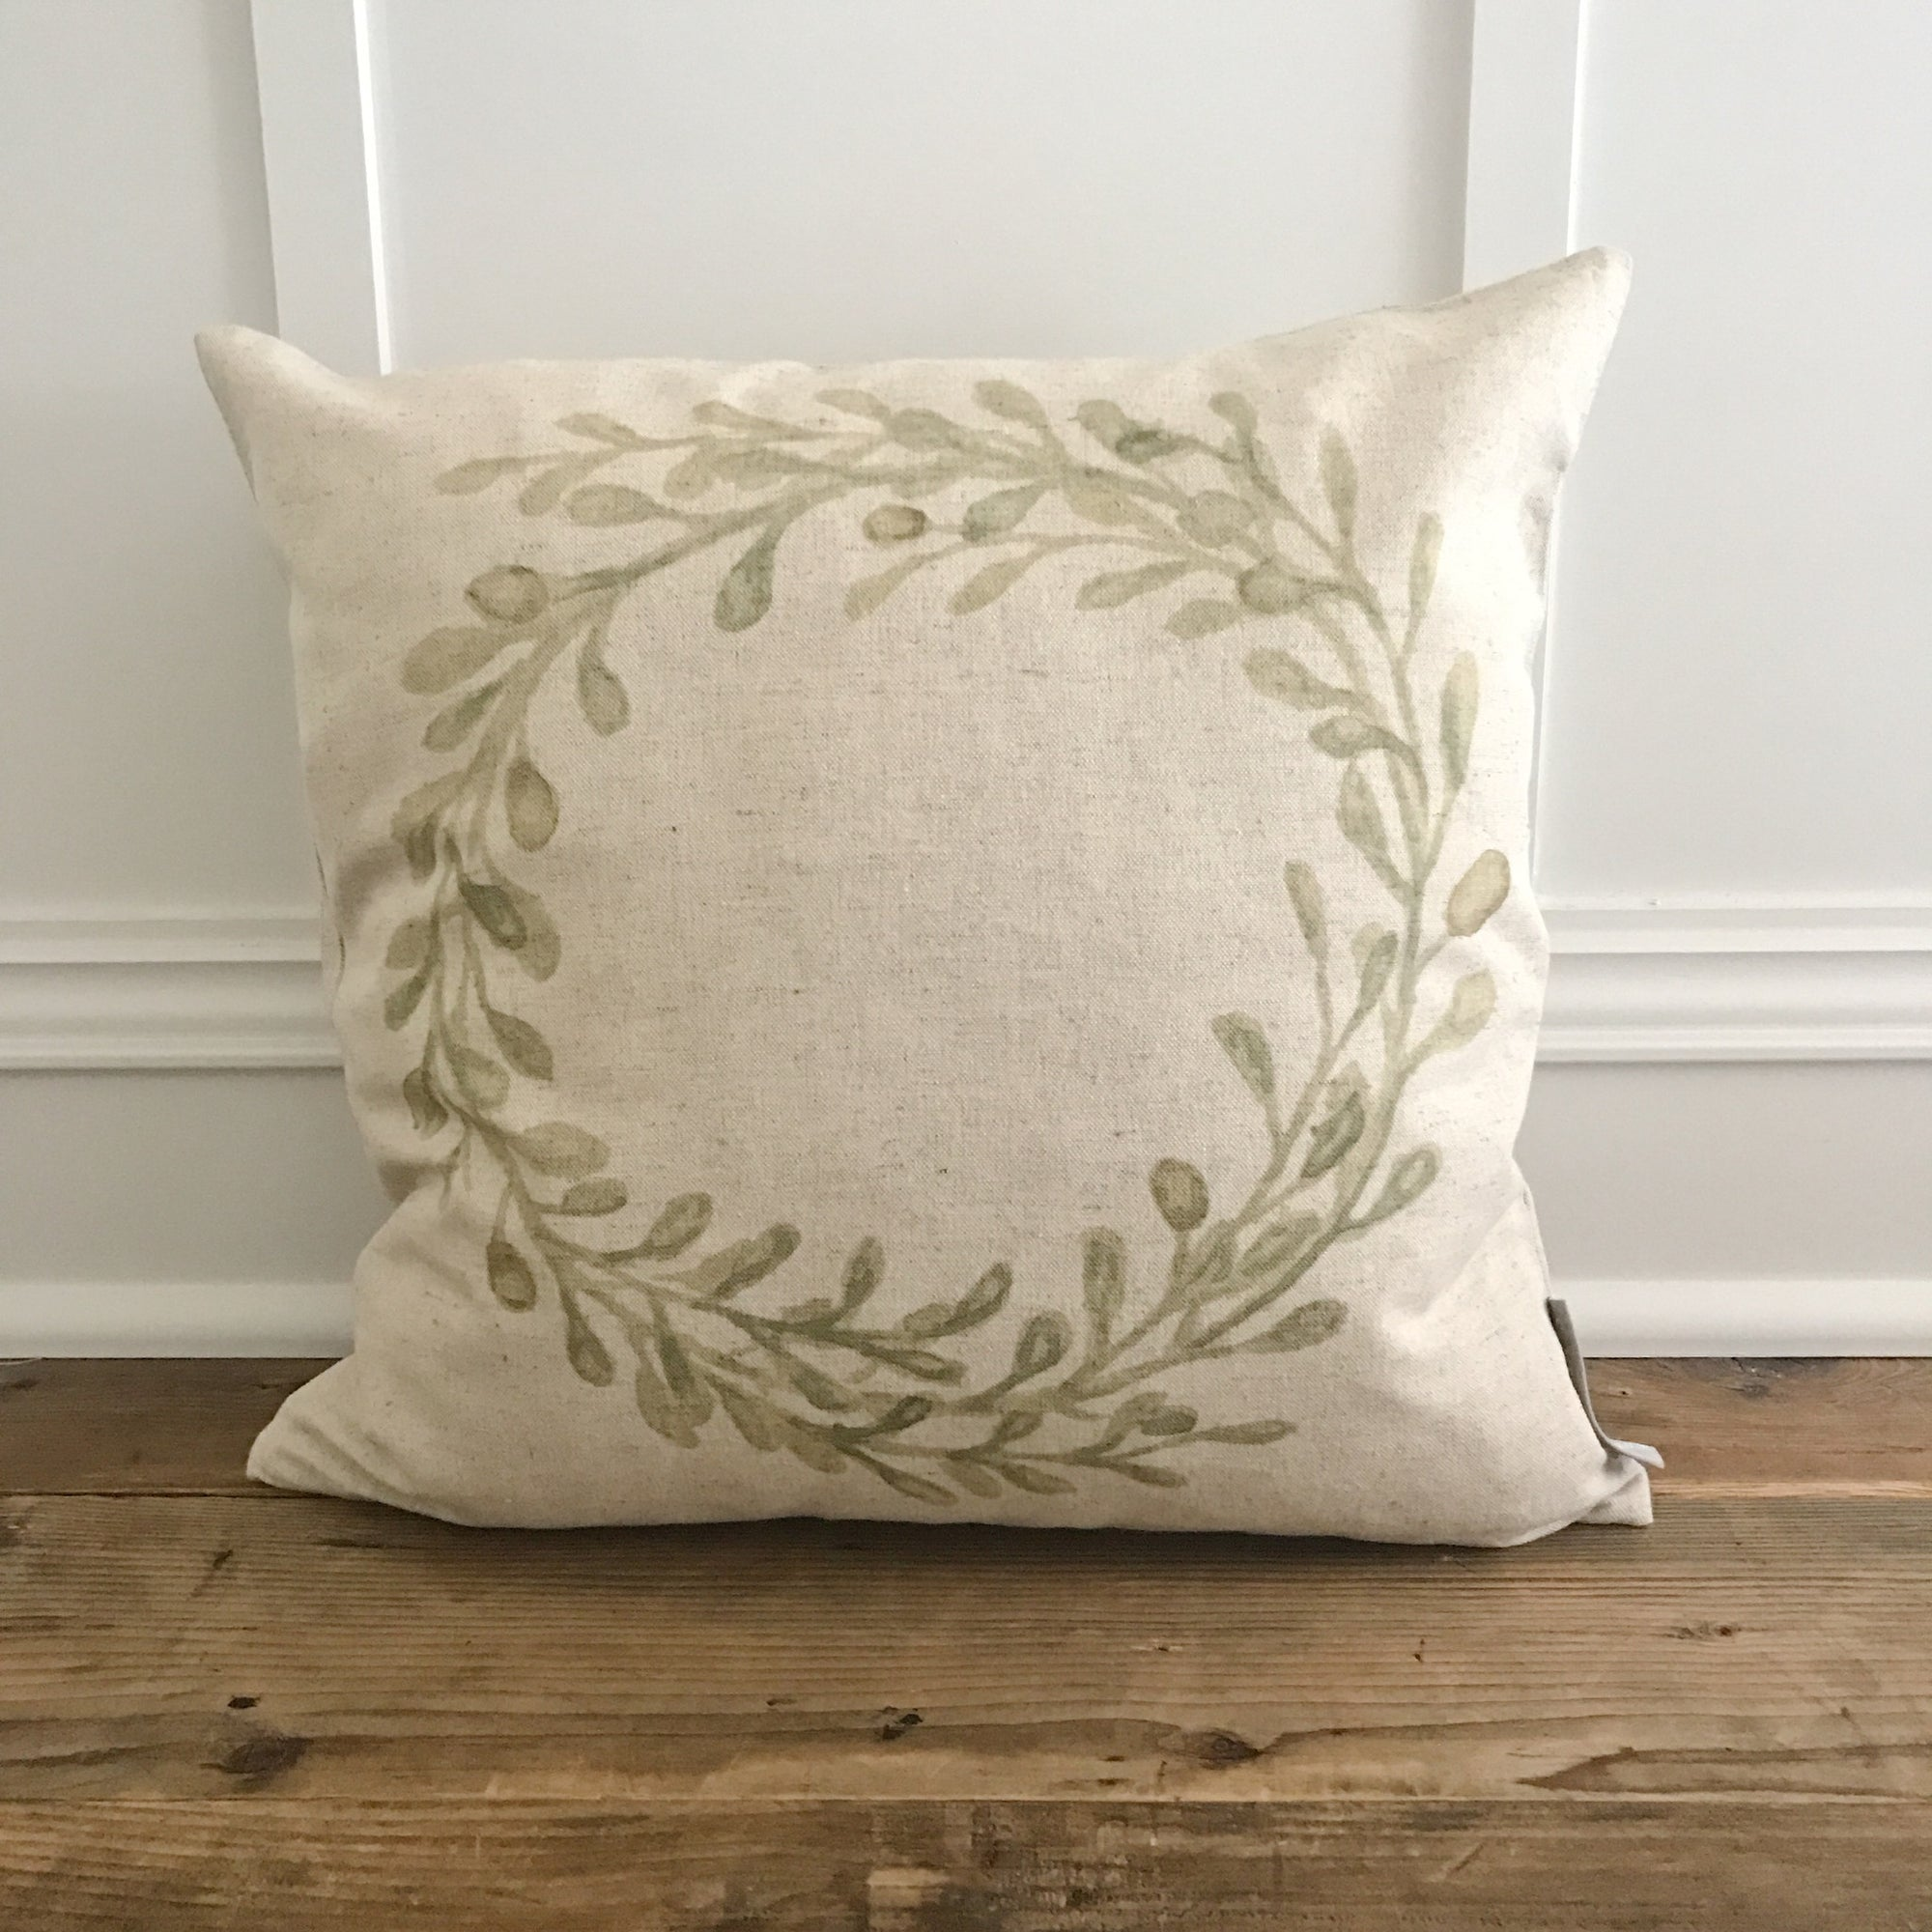 Watercolor Olive Wreath Pillow Cover - Linen and Ivory